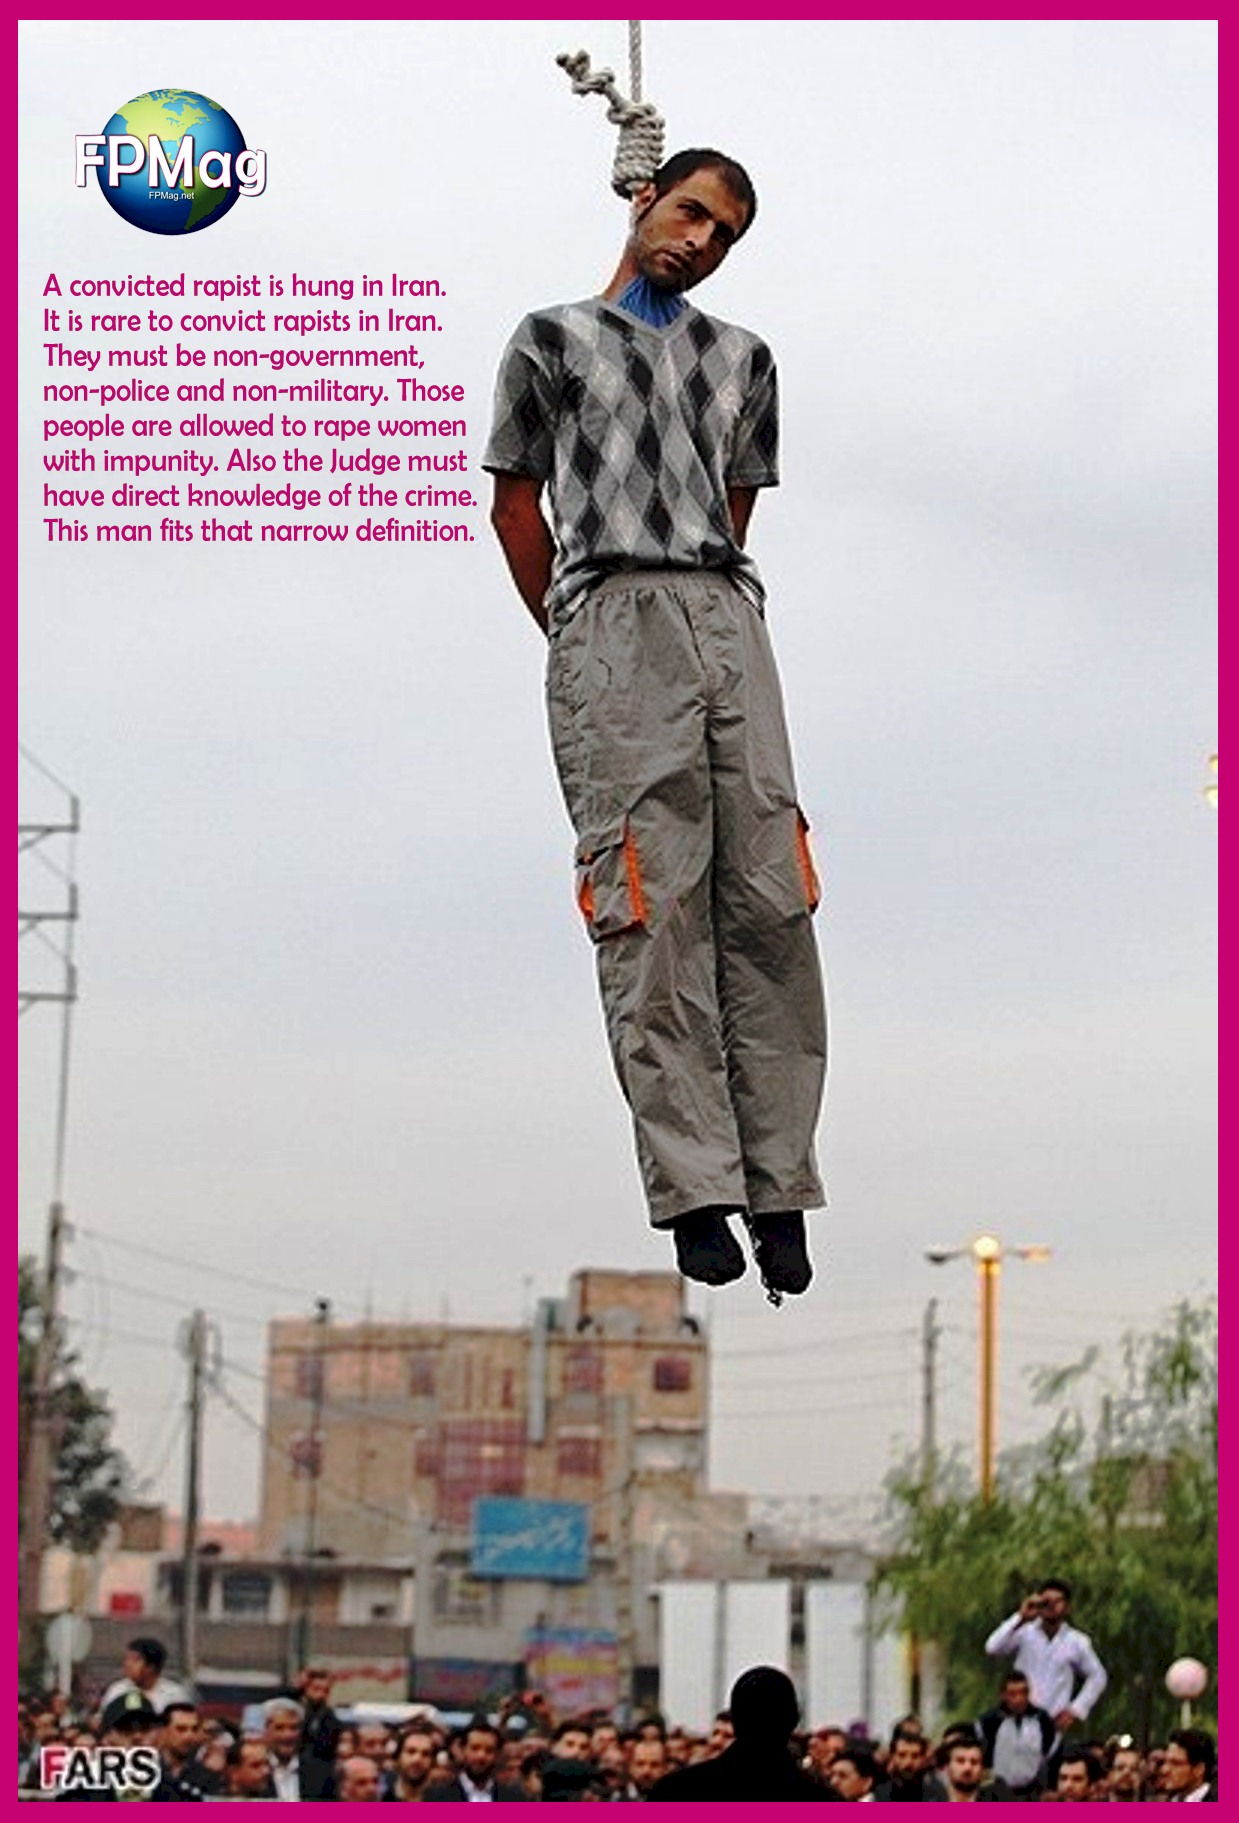 A convicted rapist is hung in Iran. It is rare to convict rapists in Iran. They must be non-government, non-police and non-military. Those people are allowed to rape women with impunity. Also the Judge must have direct knowledge of the crime. This man fits that narrow definition.